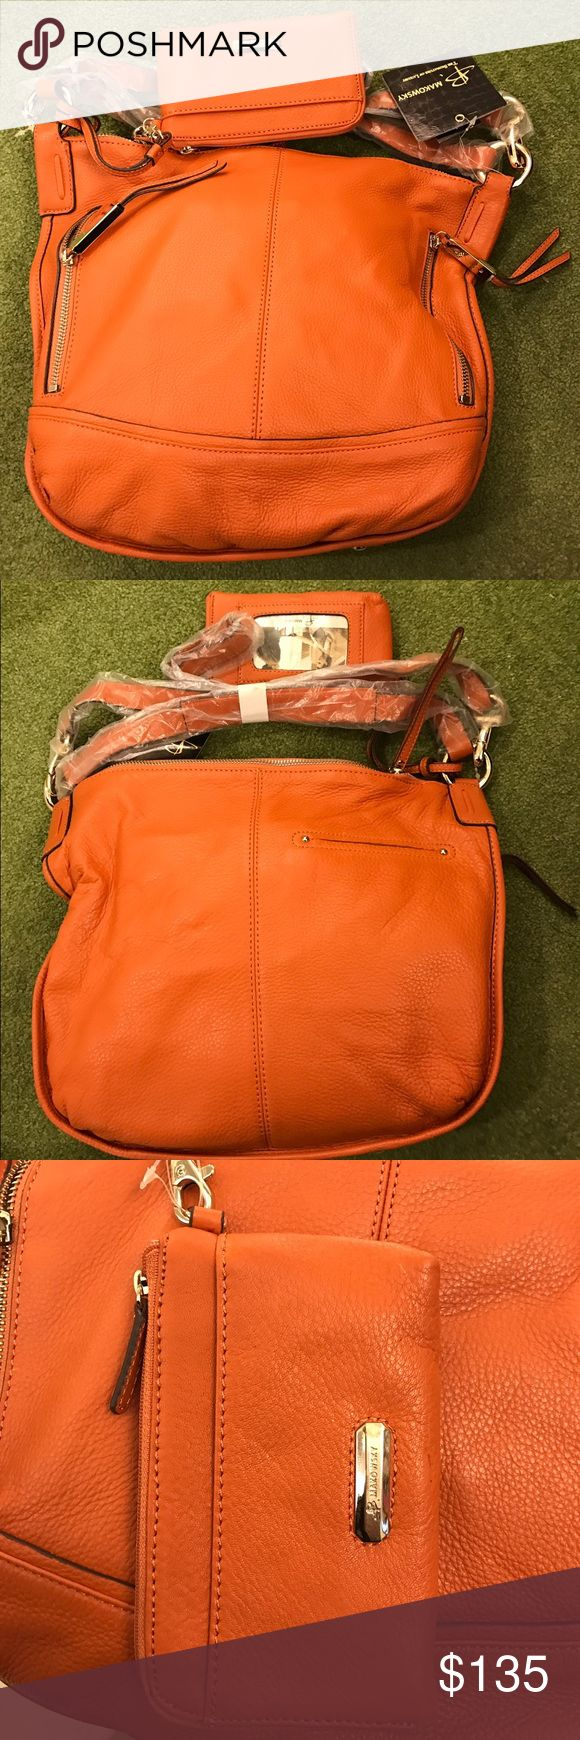 Brand New B. Makowsky Orange Leather Handbag This is a brand new B. Makowsky handbag with matching wallet. The bag is 13.5 inches wide  x 13 inches height. The smaller strap is 14inches long and the cross body strap is 34 inches long. The wallet is 6 inches wide x 4 inches height. It has a zipper compartment, Id pocket and a another little front pocket. The handbag as 2 functioning zipper pockets in the front, cell phone pocket inside the bag, another zipper pocket inside and a small pocket…